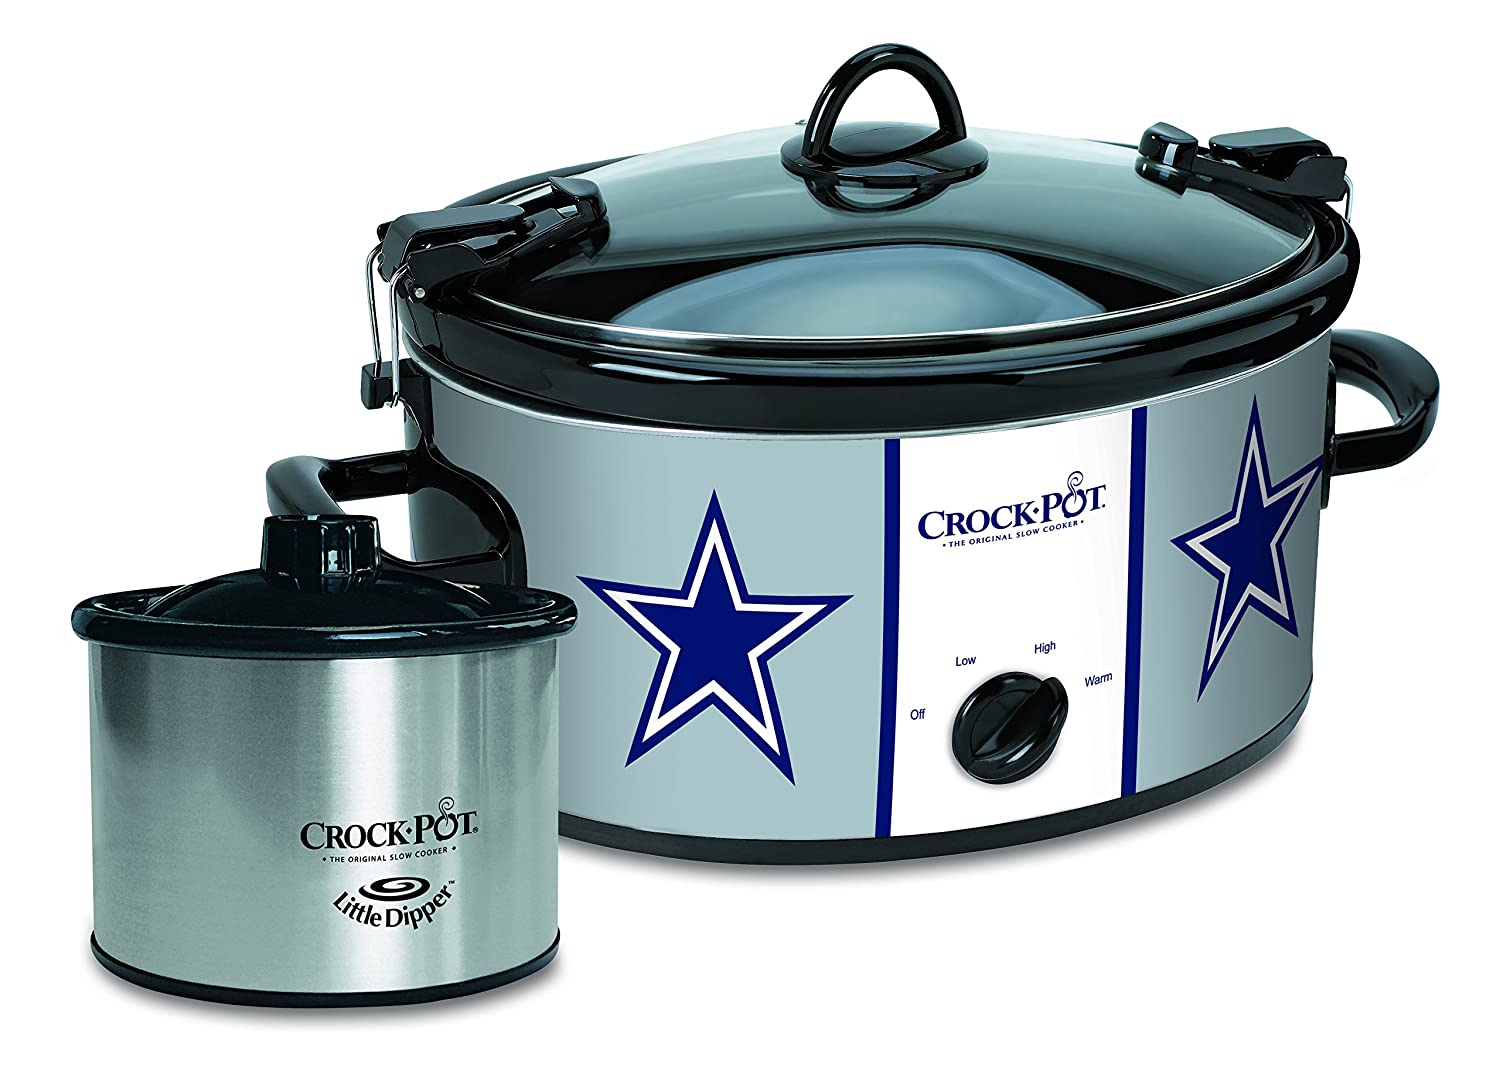 Crock-Pot Dallas Cowboys NFL Cook & Carry Slow Cooker with Bonus 16-ounce Little Dipper Food Warmer